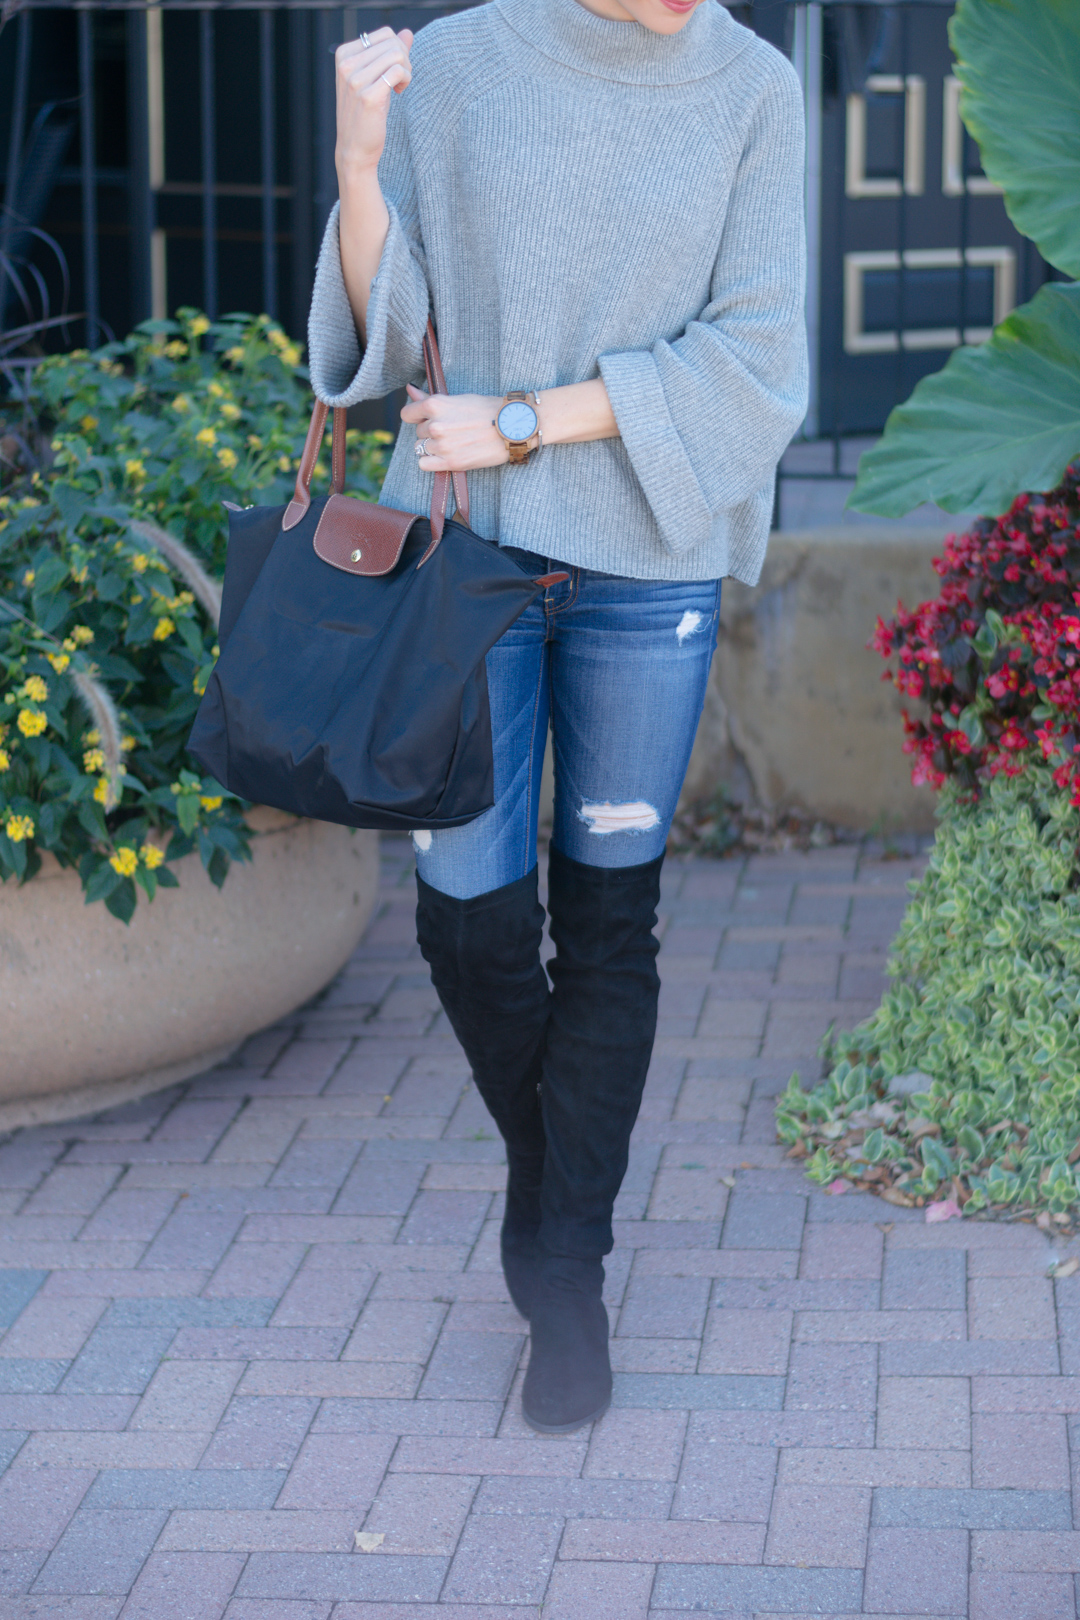 nordstrom leith cowl neck pullover, fall 2016 outfit, gray turtleneck outfit, wood watches, fall accessories, jord watch, frankie series watch, over the knee black boots